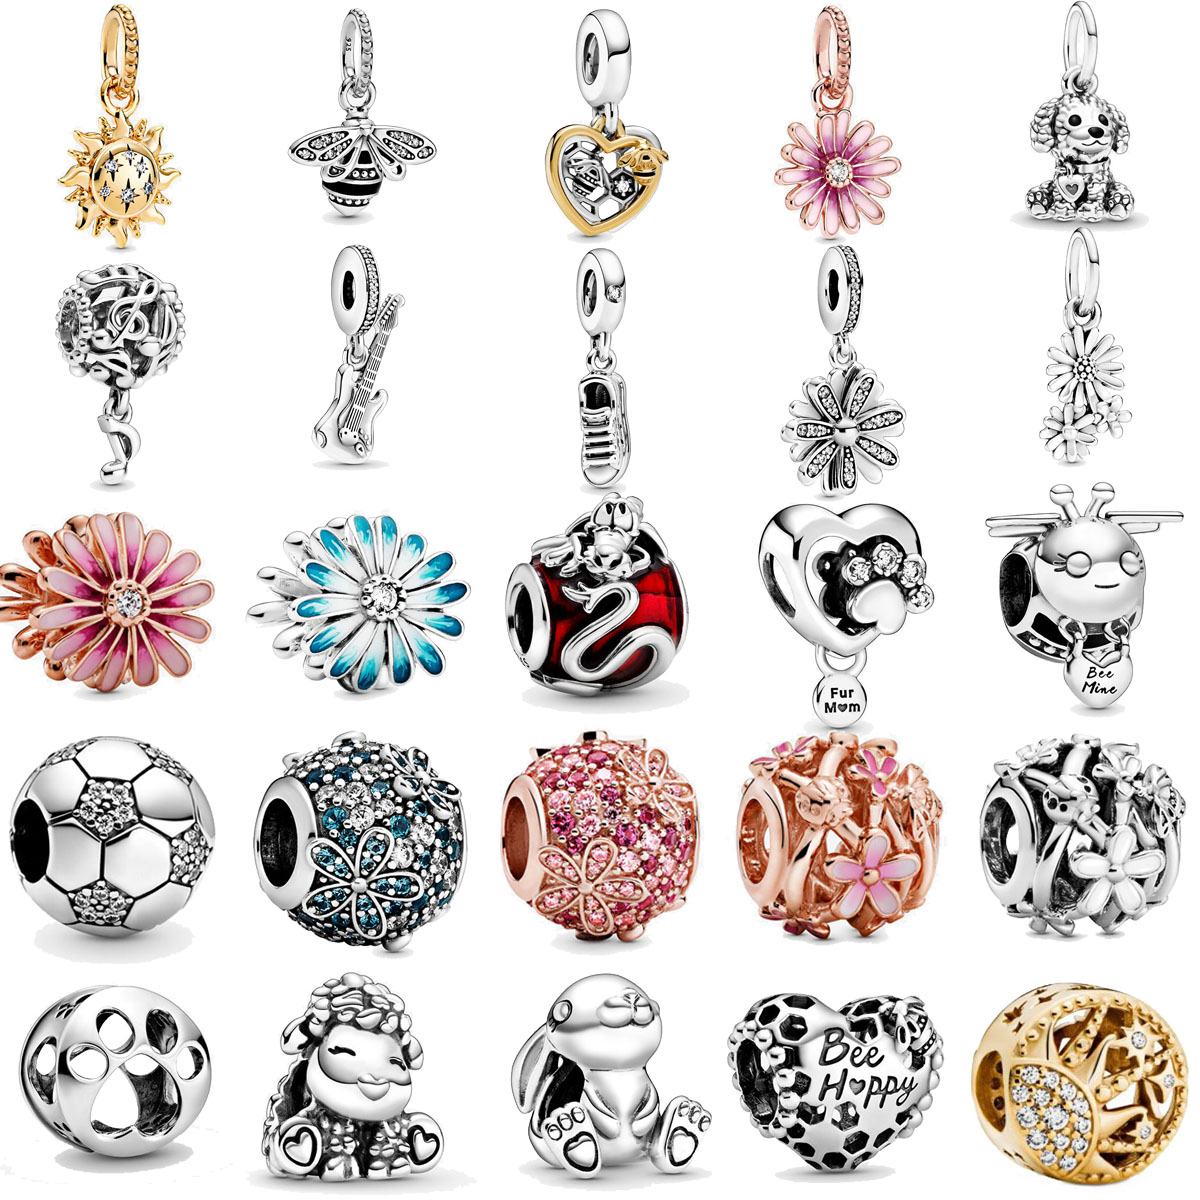 2020 Spring New 925 Sterling Silver Beads Sparkling Daisy Flower Dog Charms Fit Original Pandora Bracelets Women DIY Jewelry